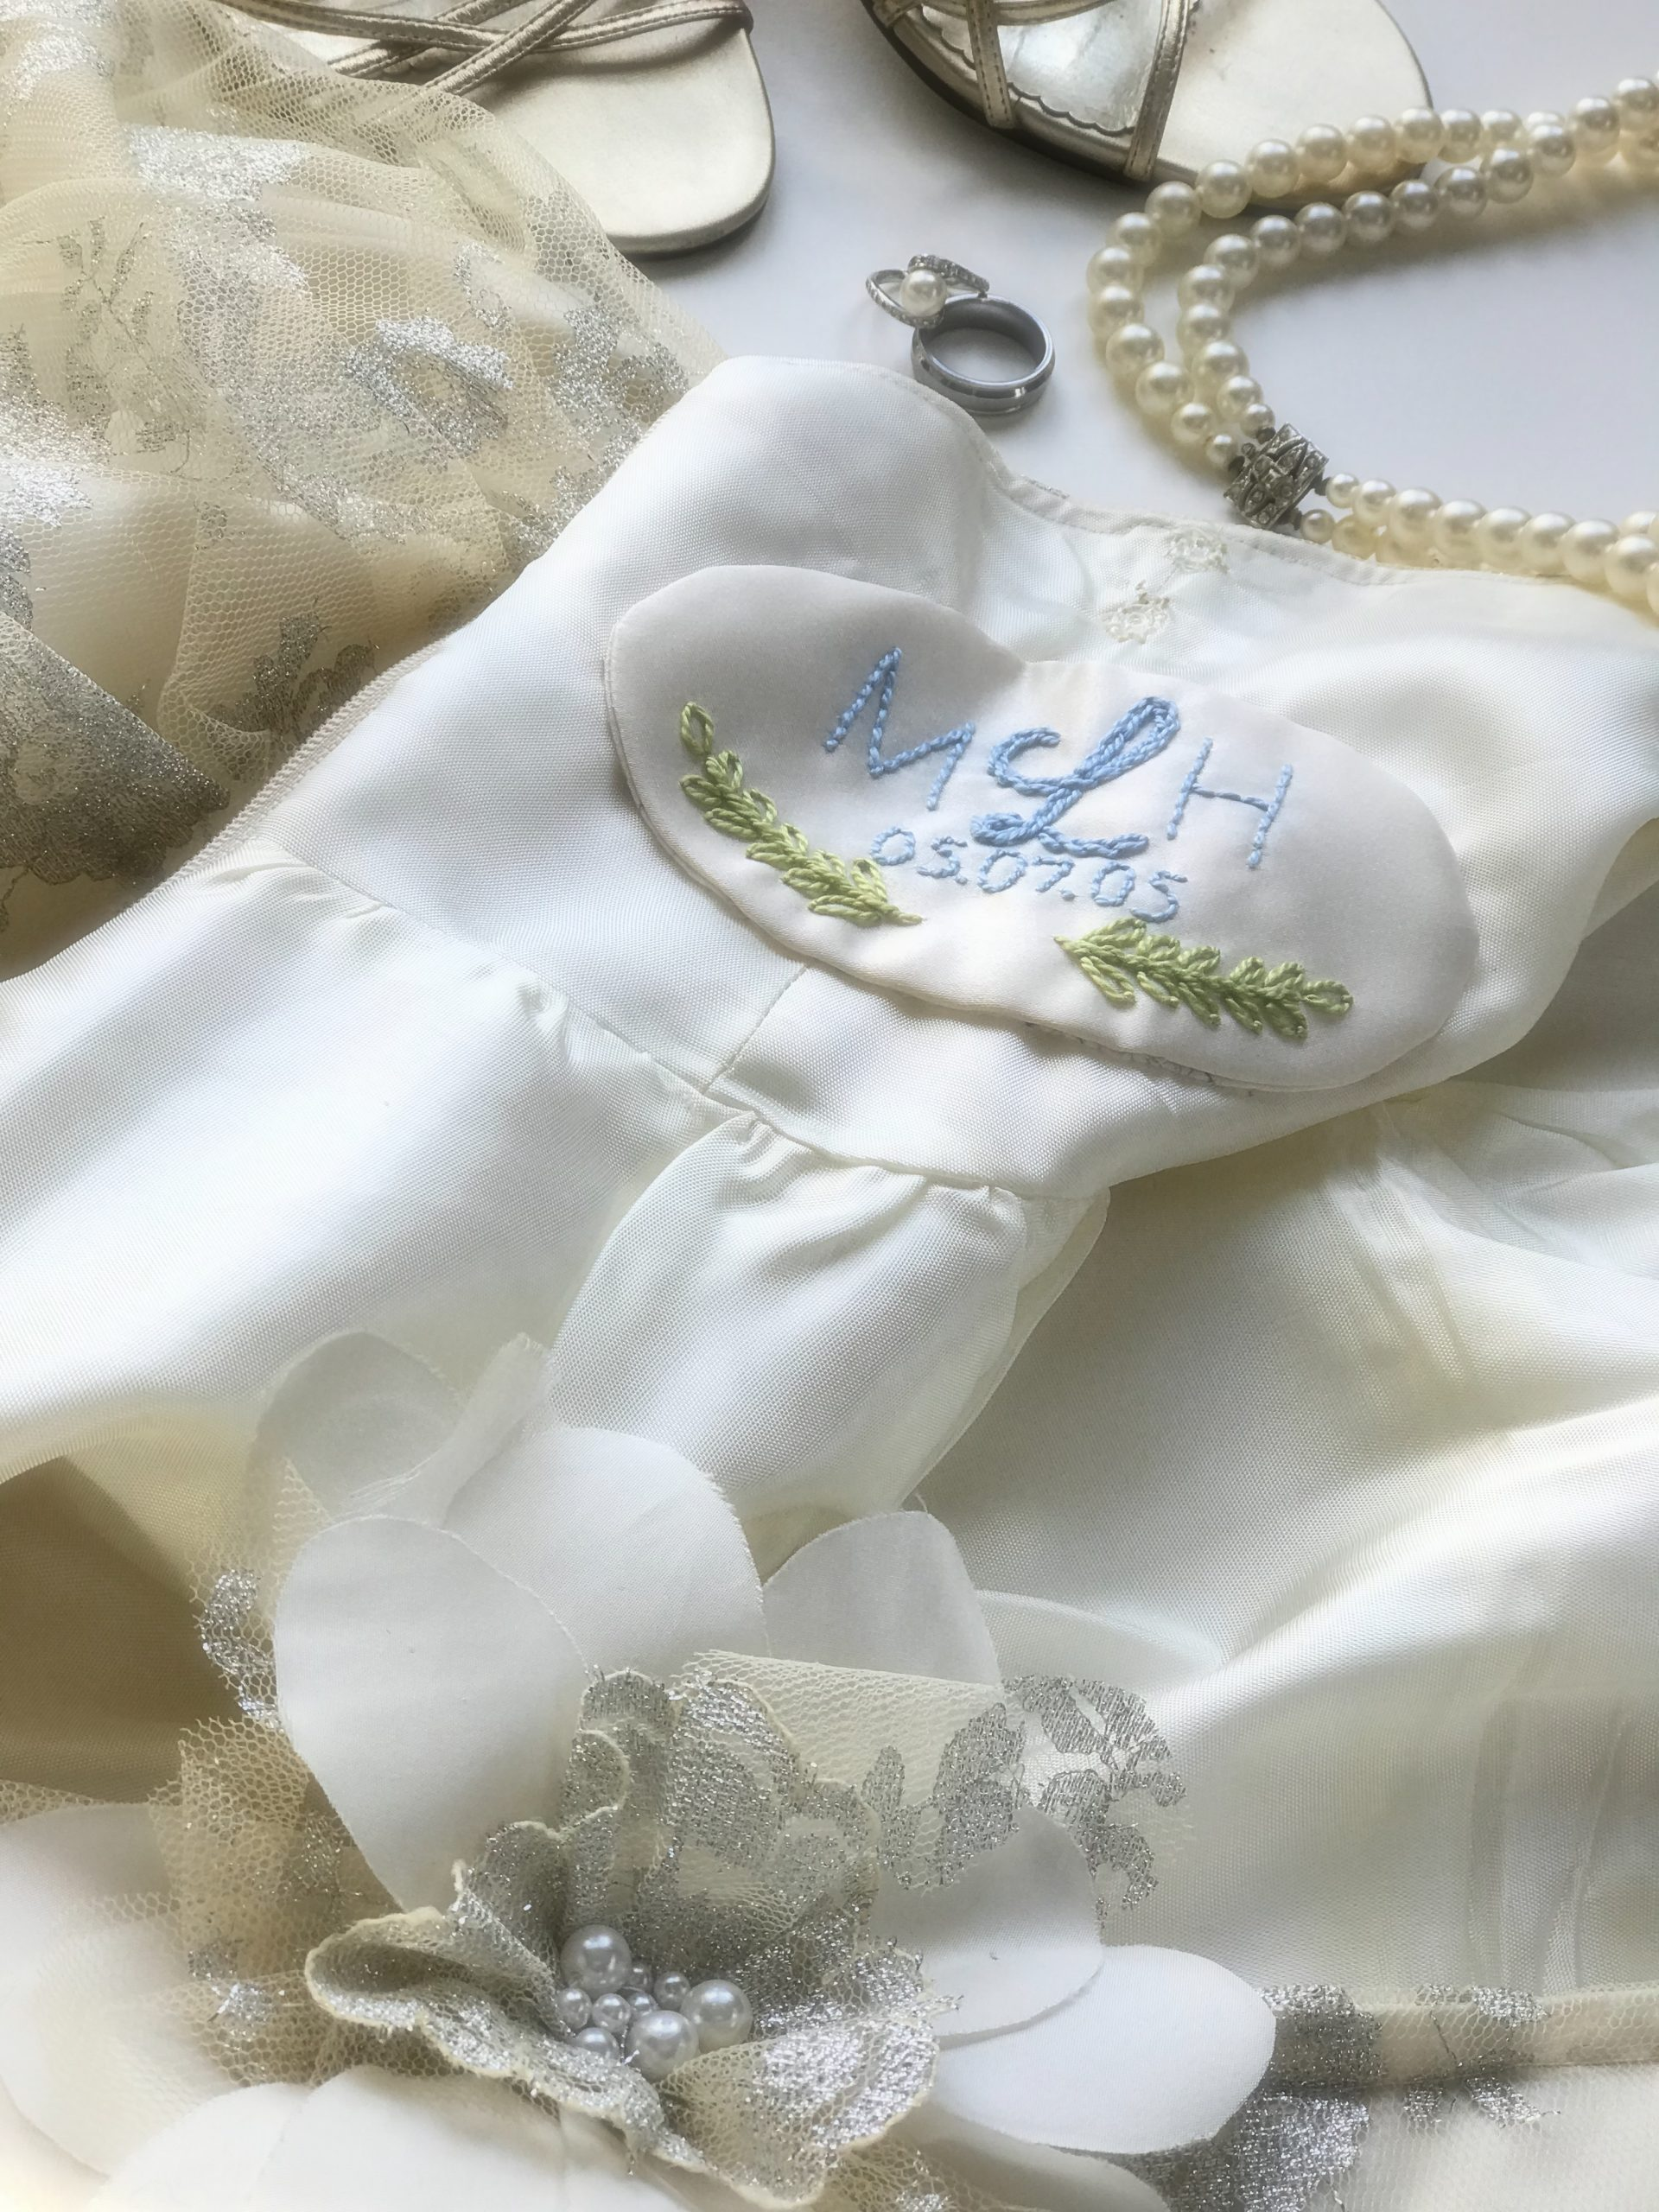 Embroidery done on the dress of a future bride done by Megan Hamilton Weddings. Featured on Dream Weddings.